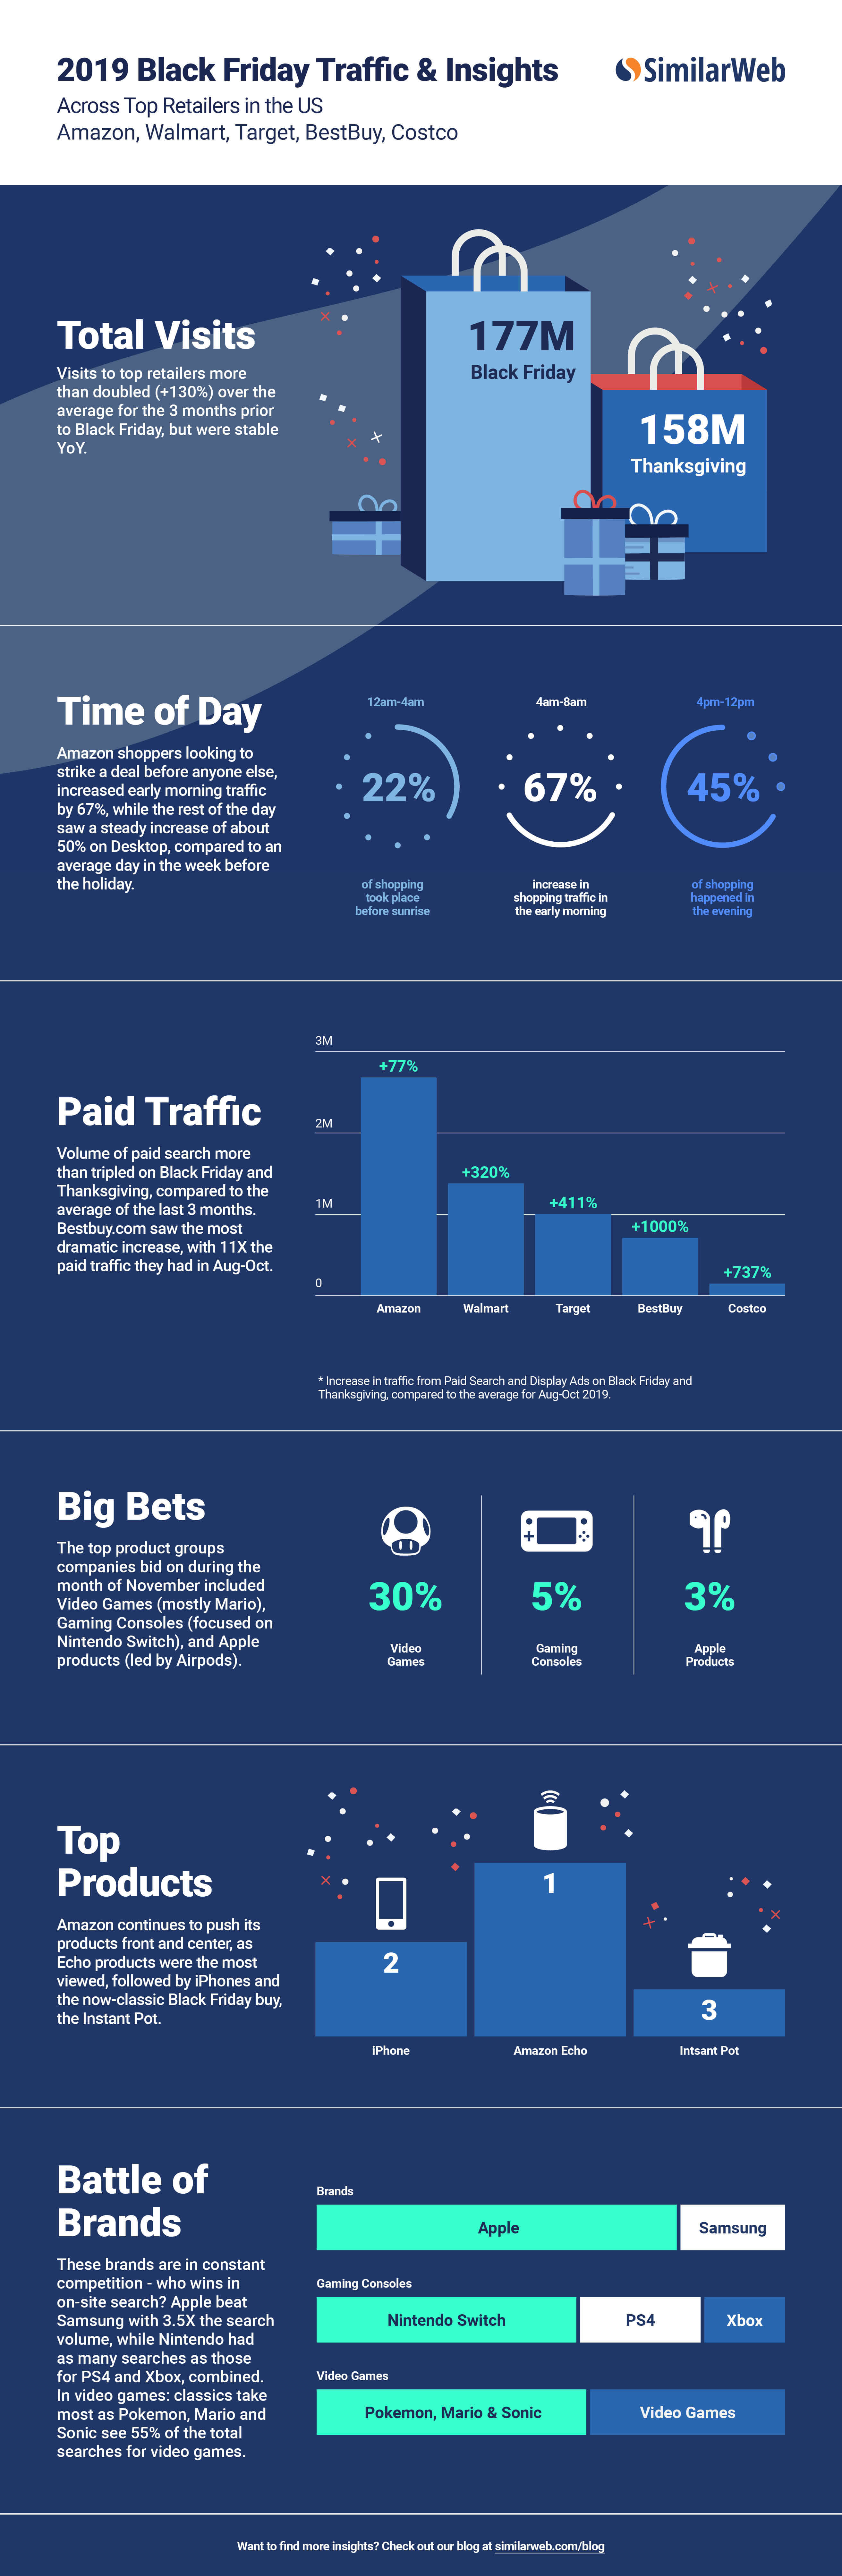 Infographic 2019 Black Friday Traffic Insights